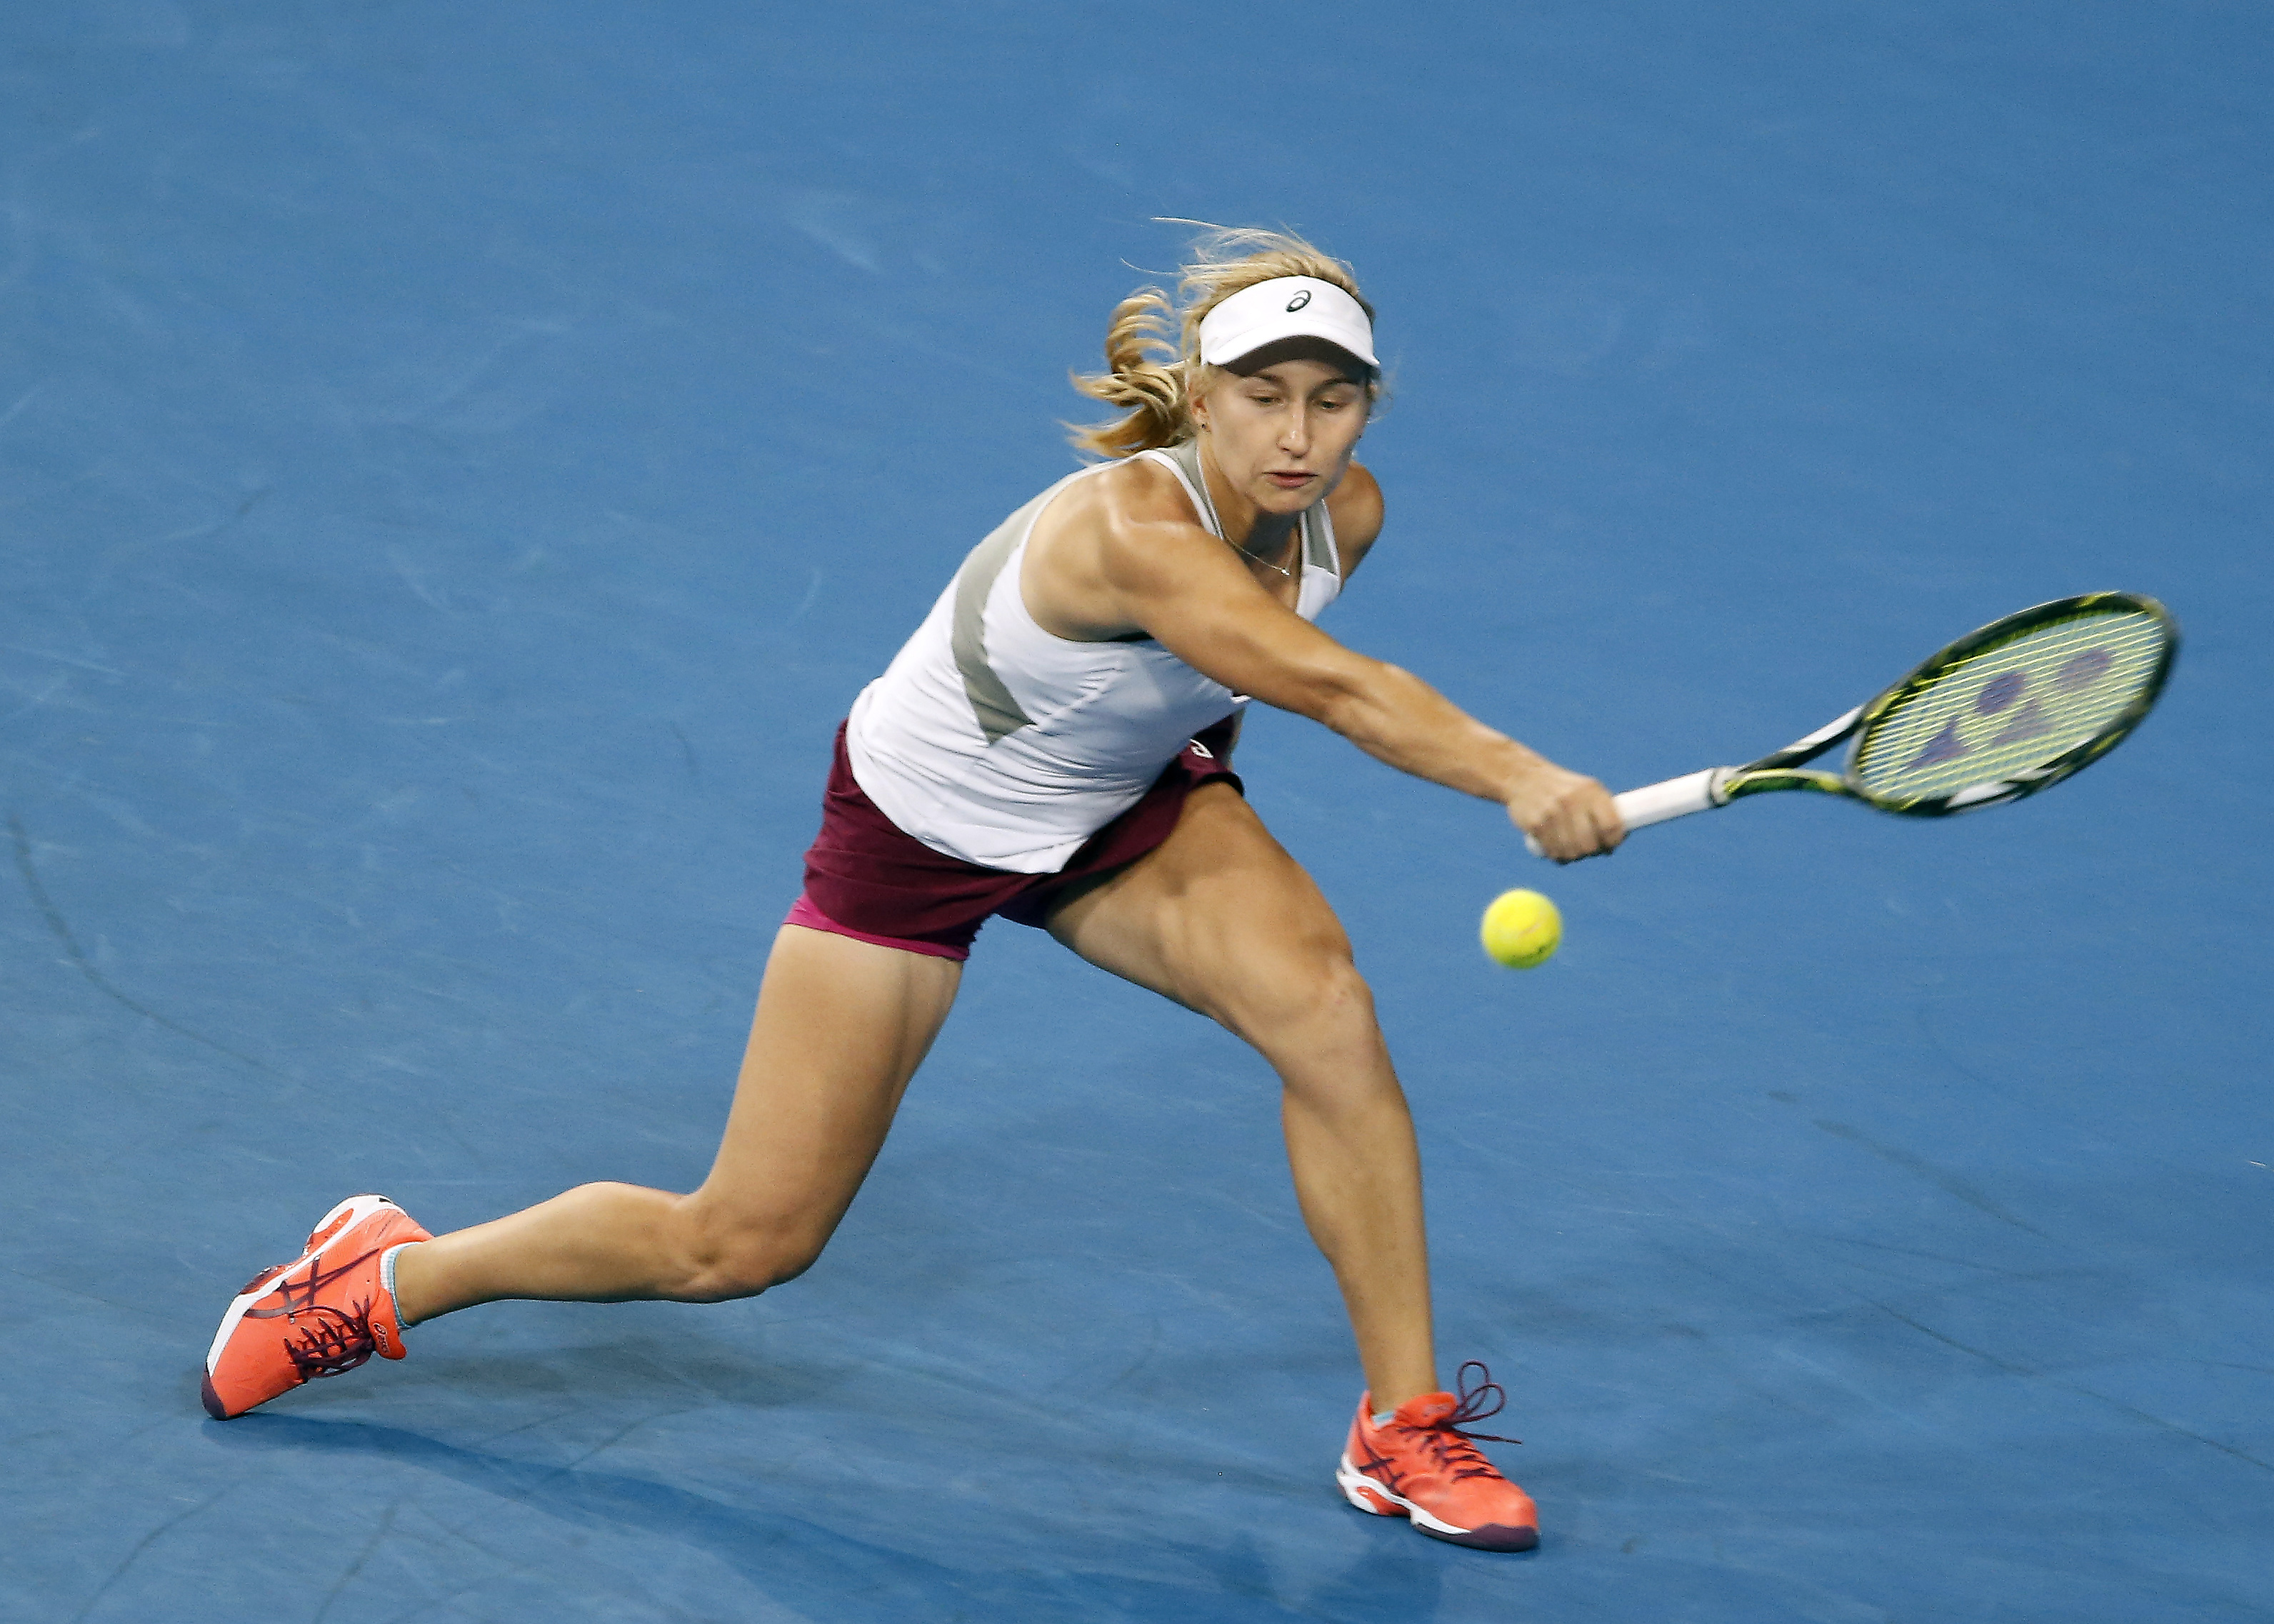 Daria Gavrilova of Australia plays a backhand shot against Elina Svitolina of Ukraine during the women's singles final at the Hopman Cup tennis tournament in Perth, Australia, Saturday, Jan. 9, 2016. (AP Photo/Theron Kirkman)